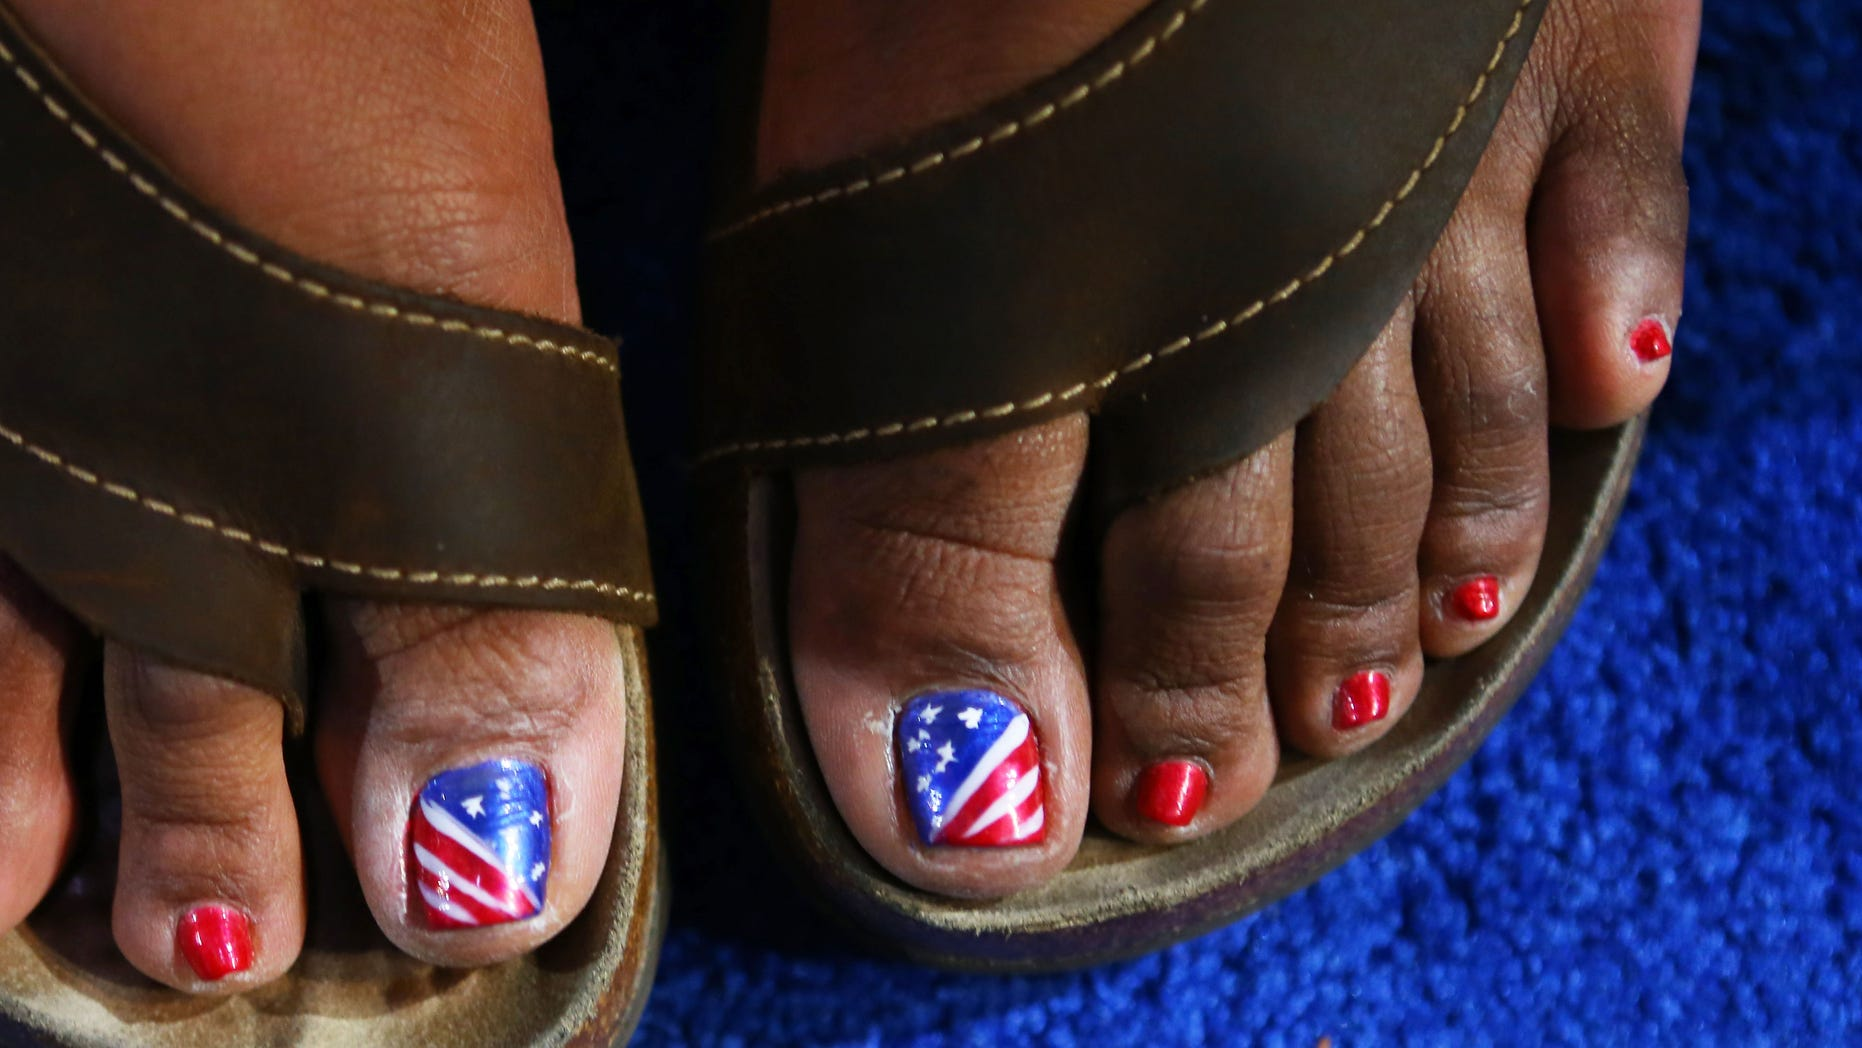 CHARLOTTE, NC - SEPTEMBER 05:  Anita White of Virginia has her toenails painted red, white, and blue during day two of the Democratic National Convention at Time Warner Cable Arena on September 5, 2012 in Charlotte, North Carolina. The DNC that will run through September 7, will nominate U.S. President Barack Obama as the Democratic presidential candidate.  (Photo by Joe Raedle/Getty Images)